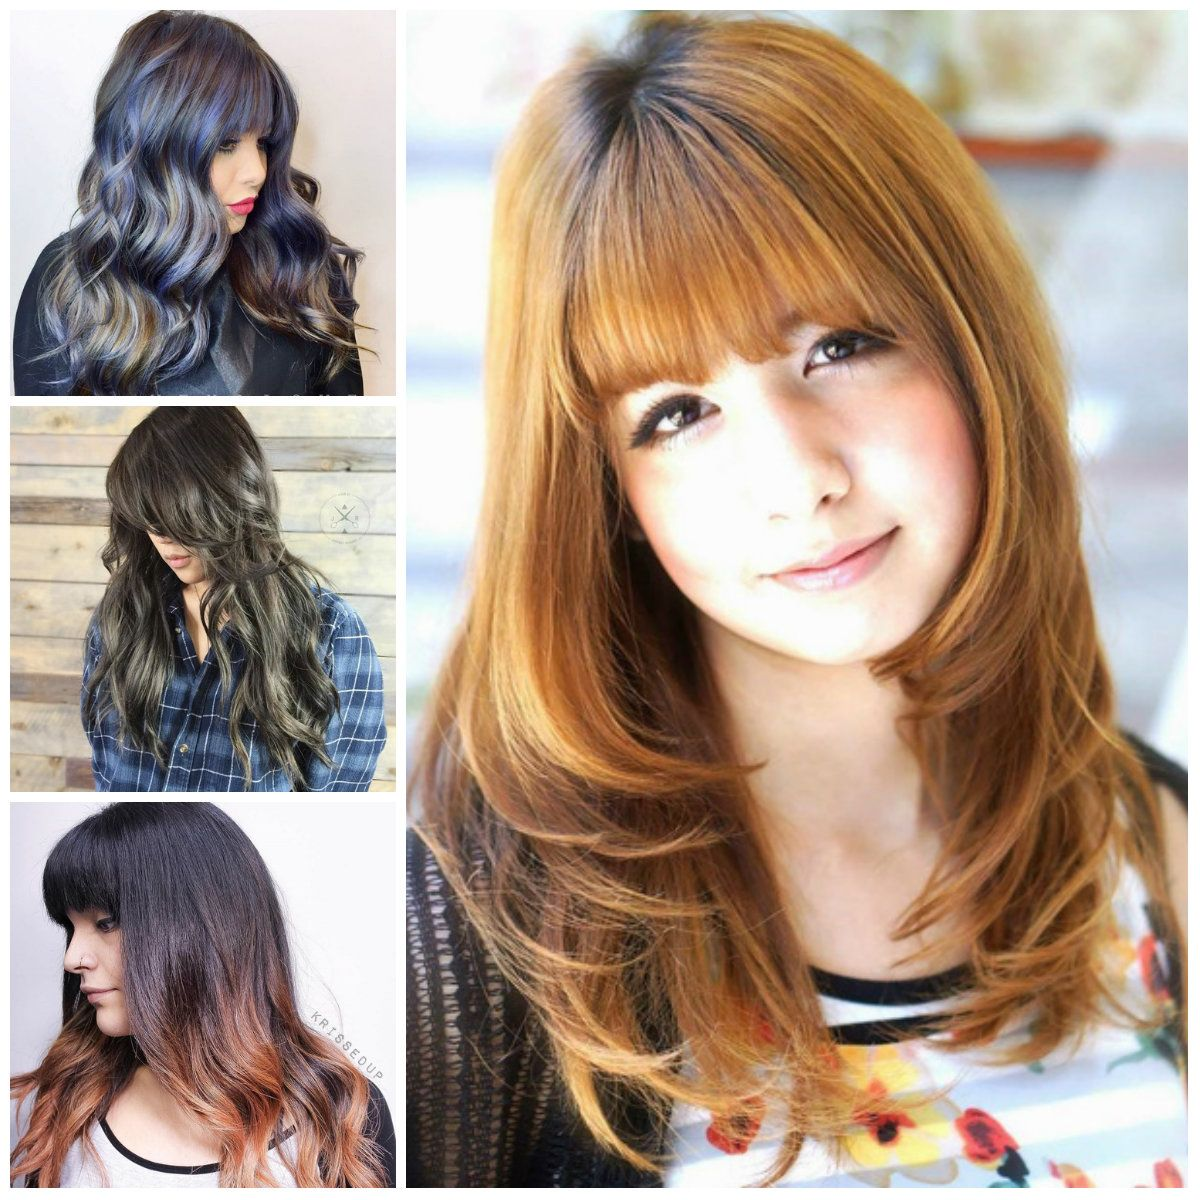 Lange Frisuren mit Pony 2018 | Neue Frisuren 2018 | Pinterest ...